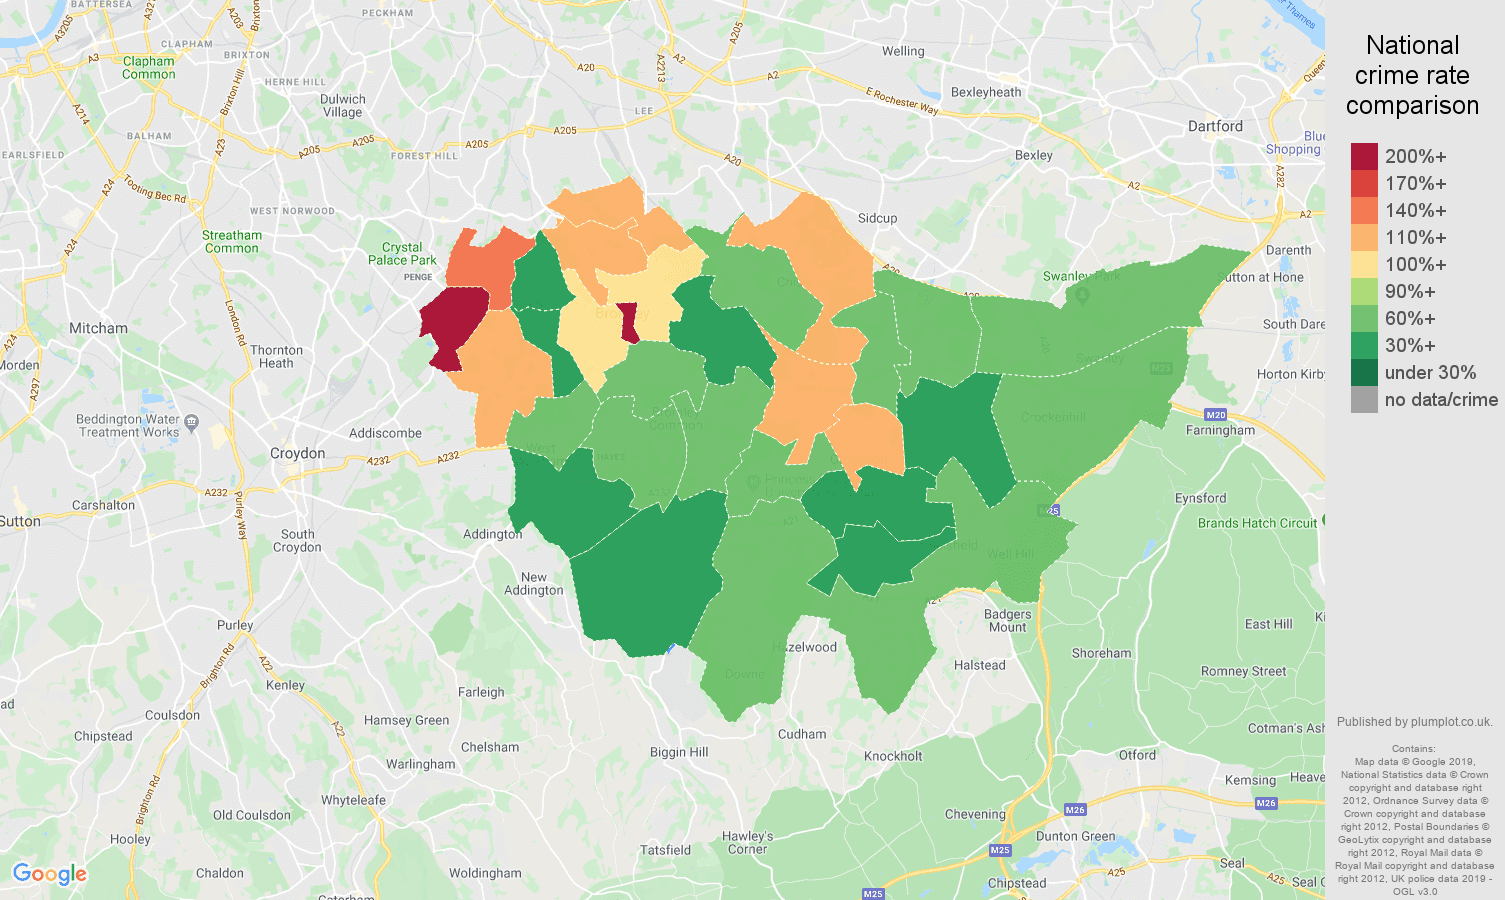 Bromley other theft crime rate comparison map